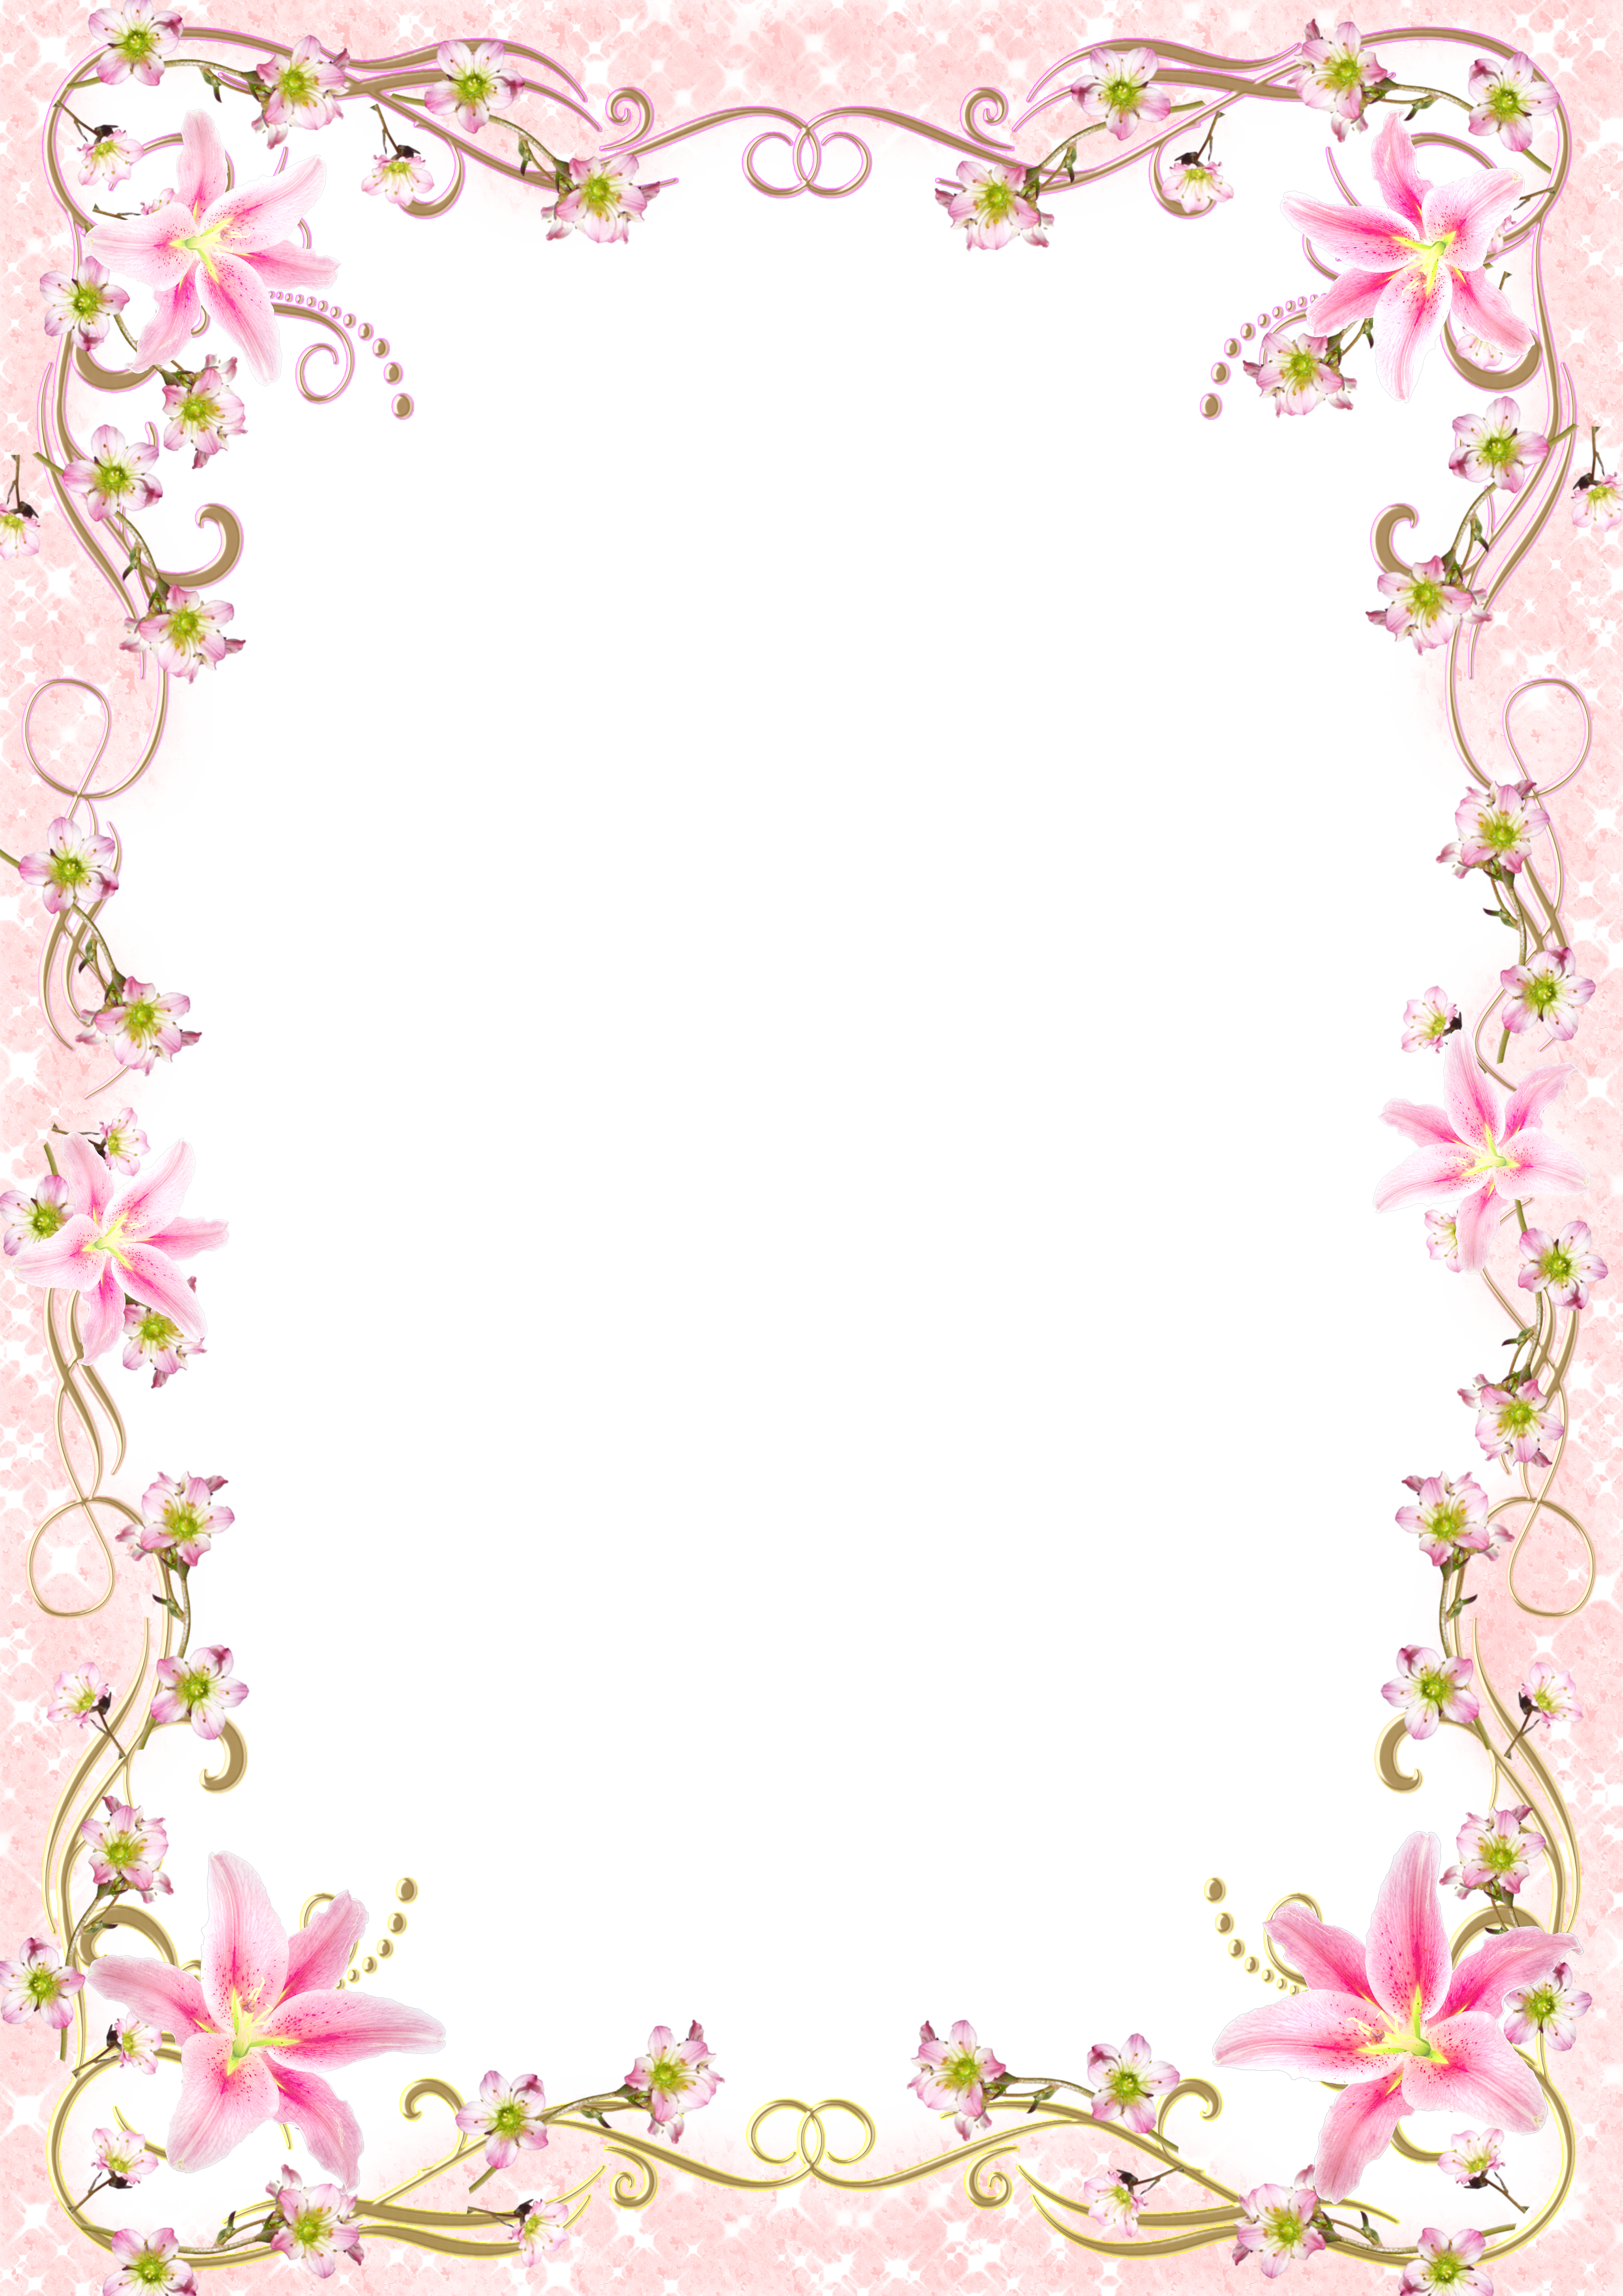 Pink floral border png. Download picture frame template